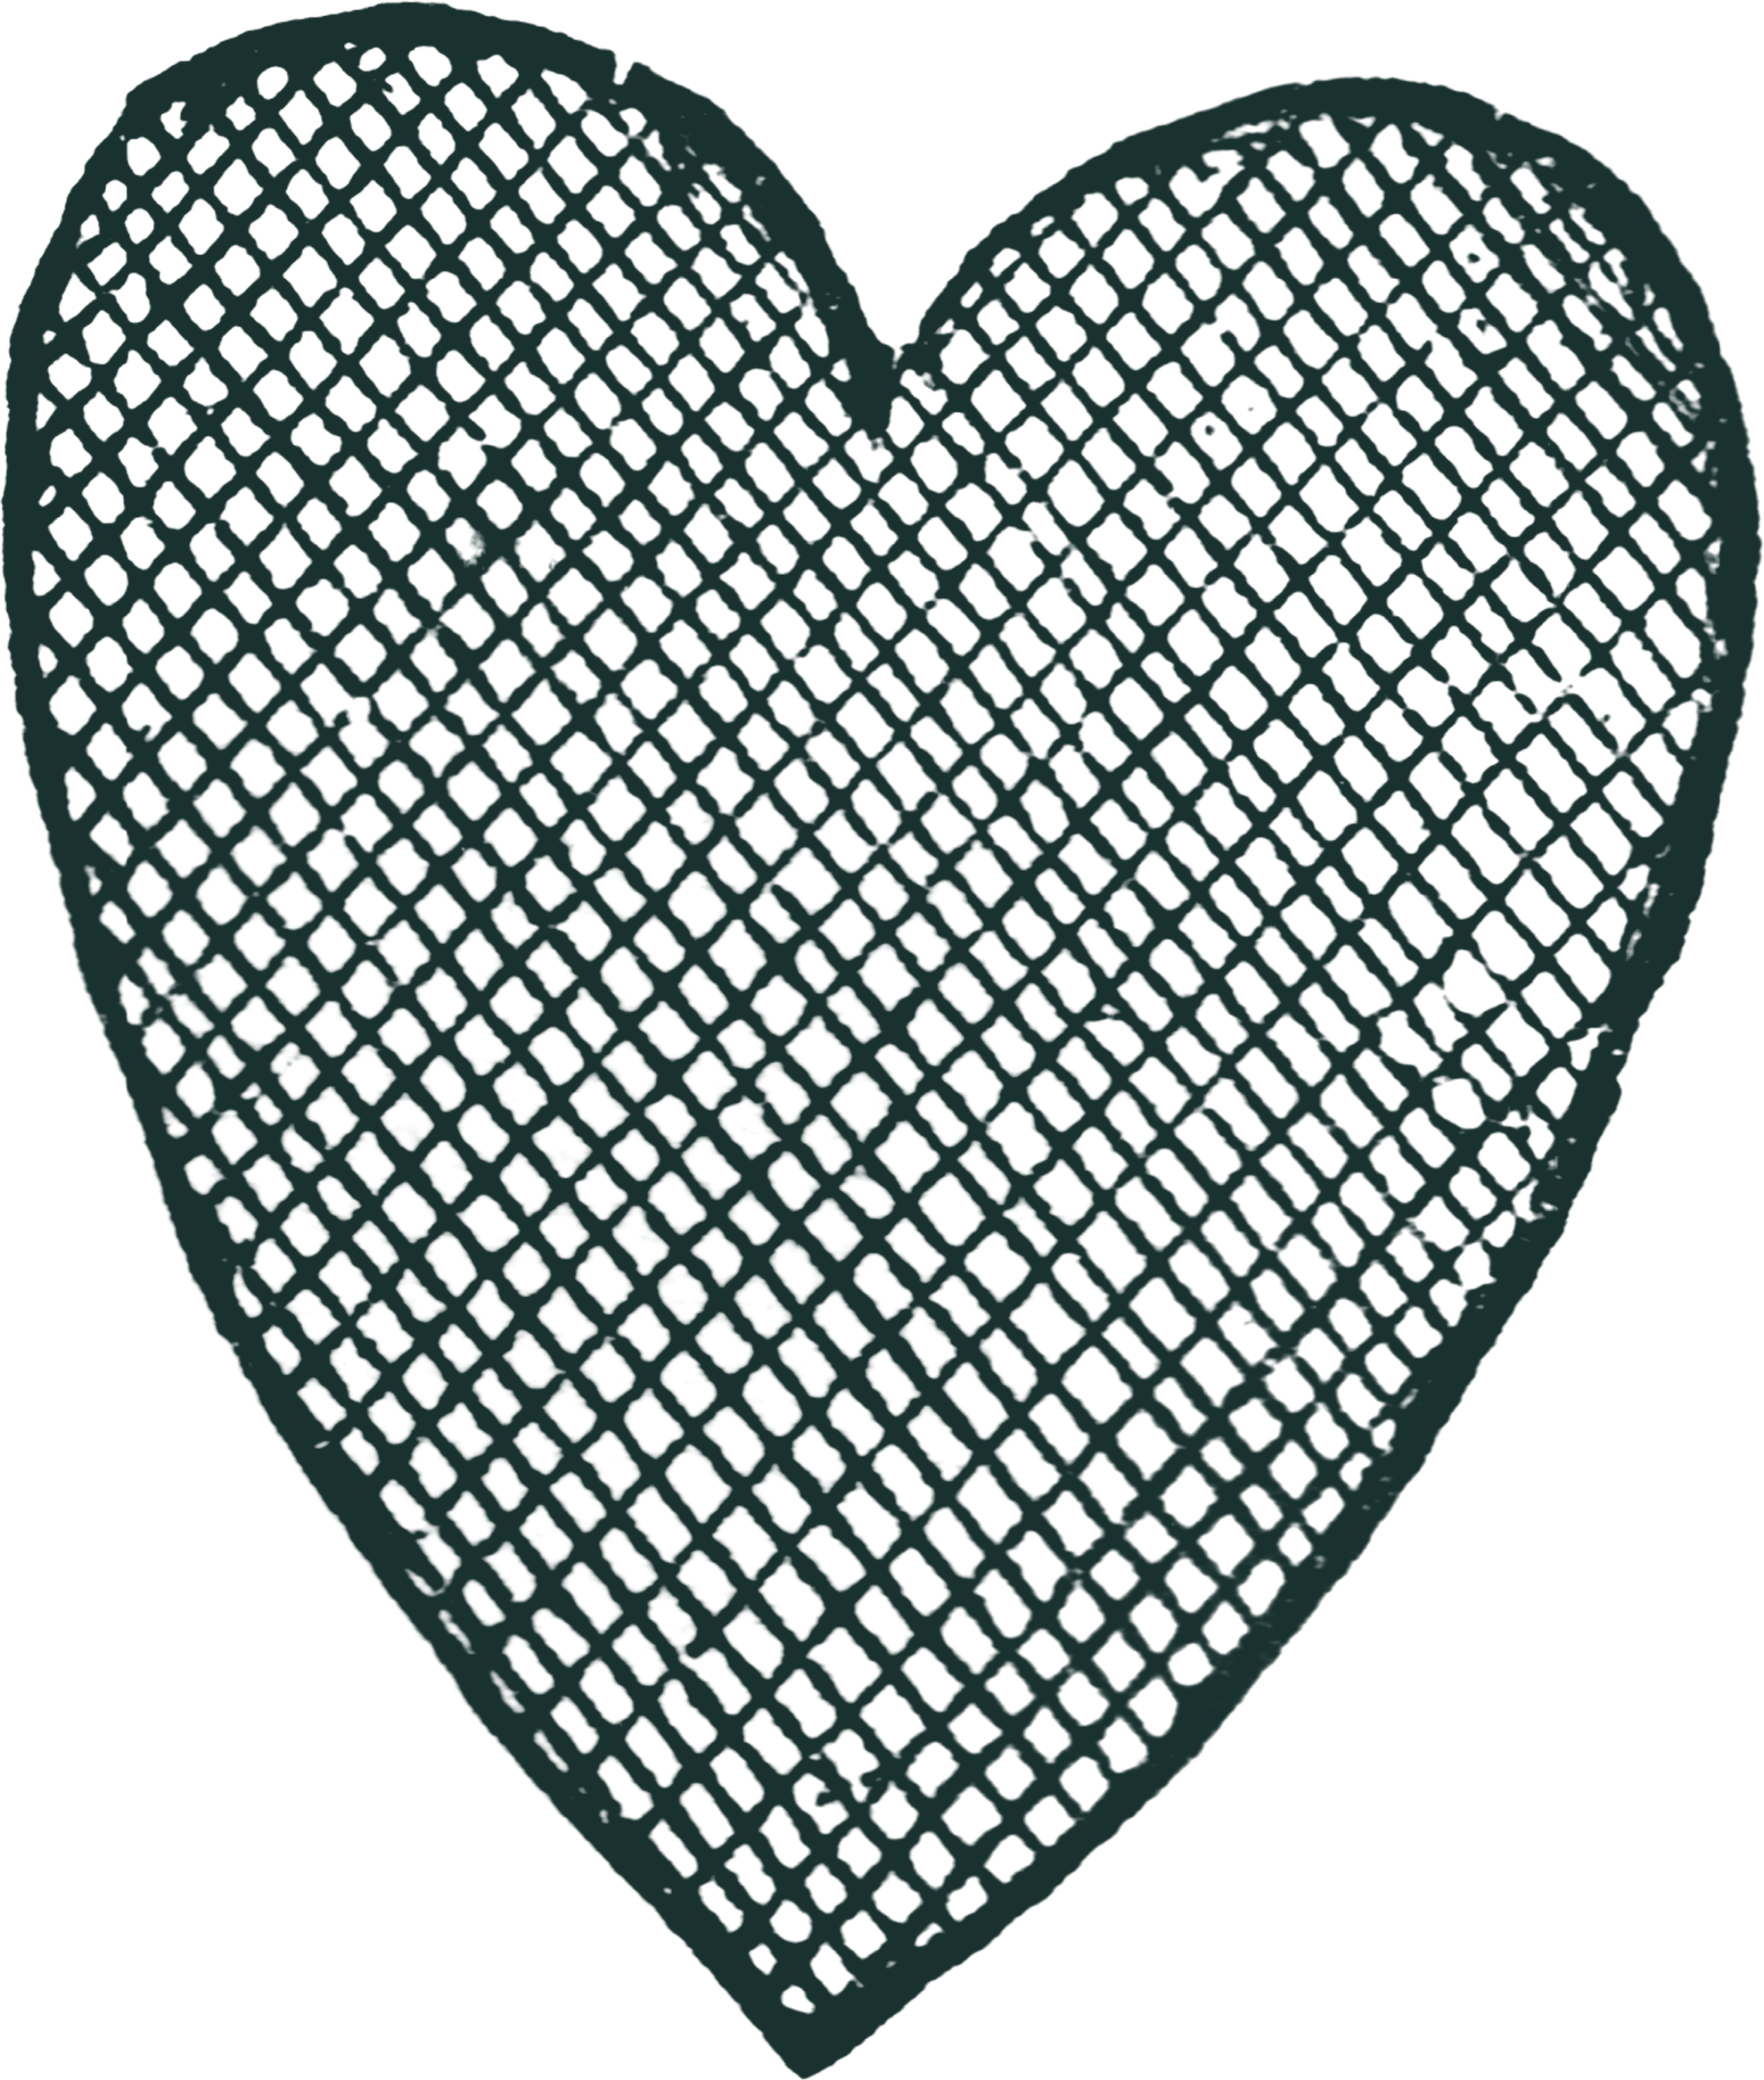 heart-r3.png